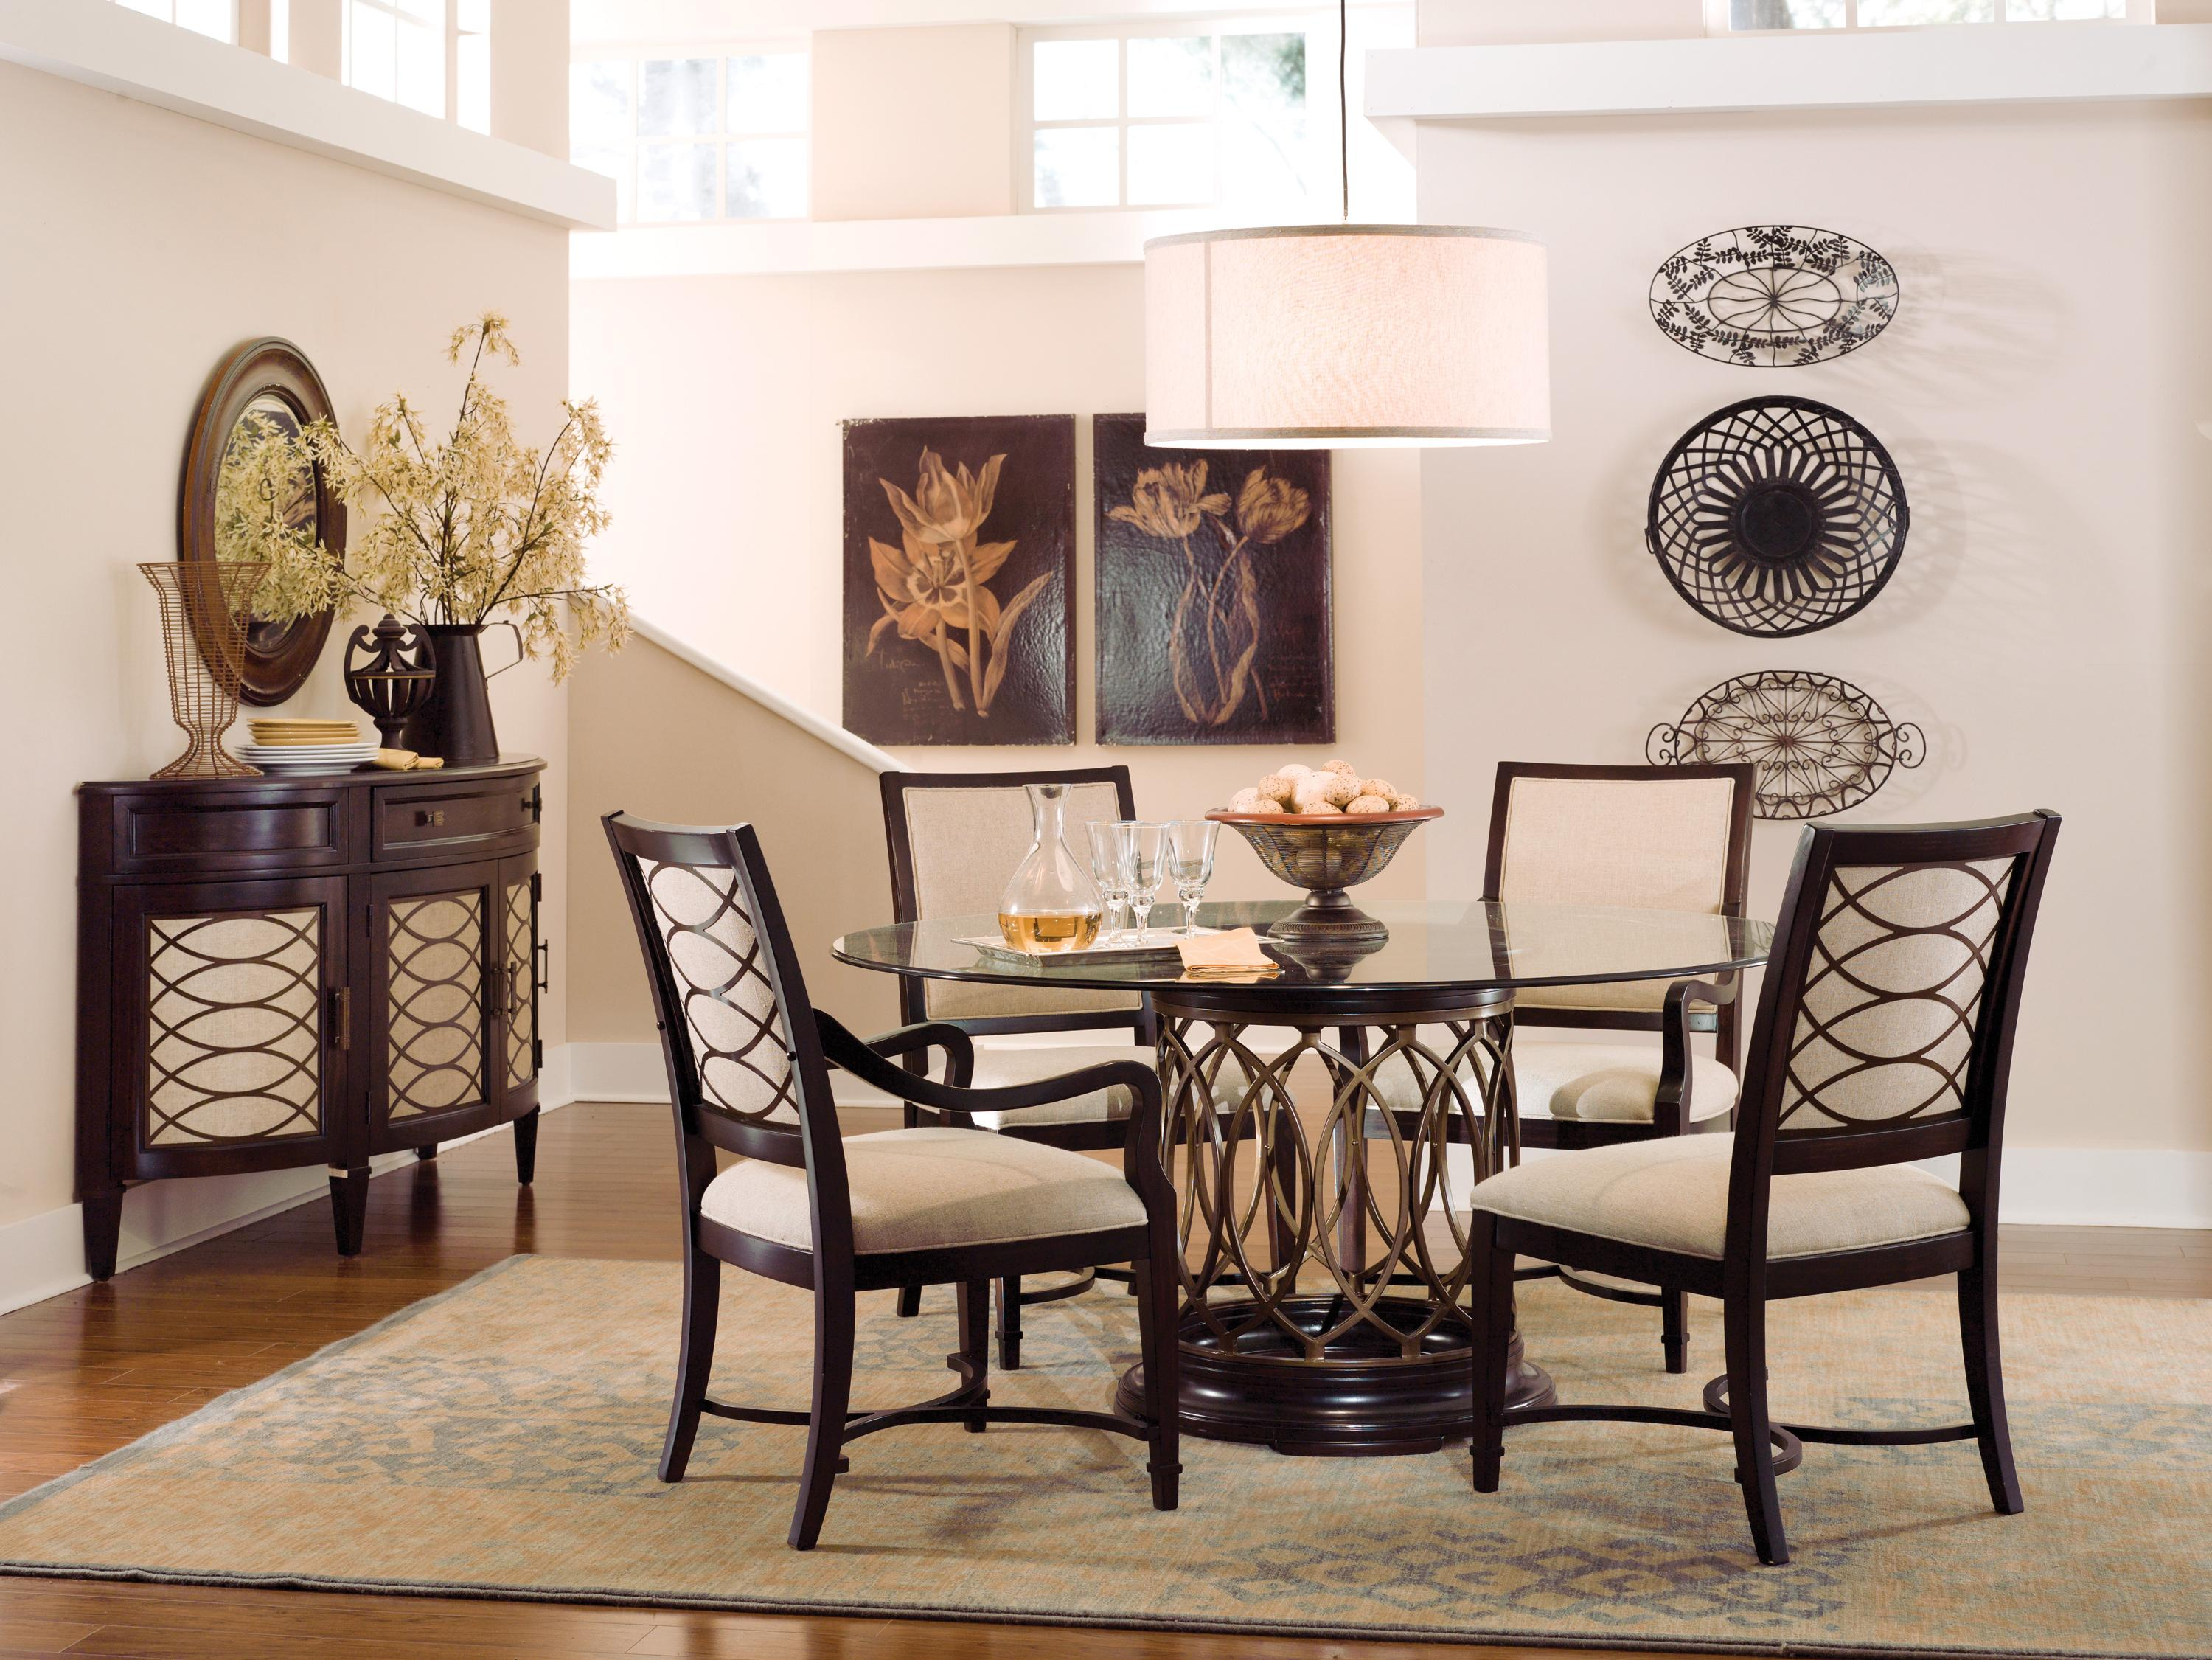 Breakfast Room Tables Intrigue Formal Dining Room Group By A R T Furniture Inc At Olinde S Furniture